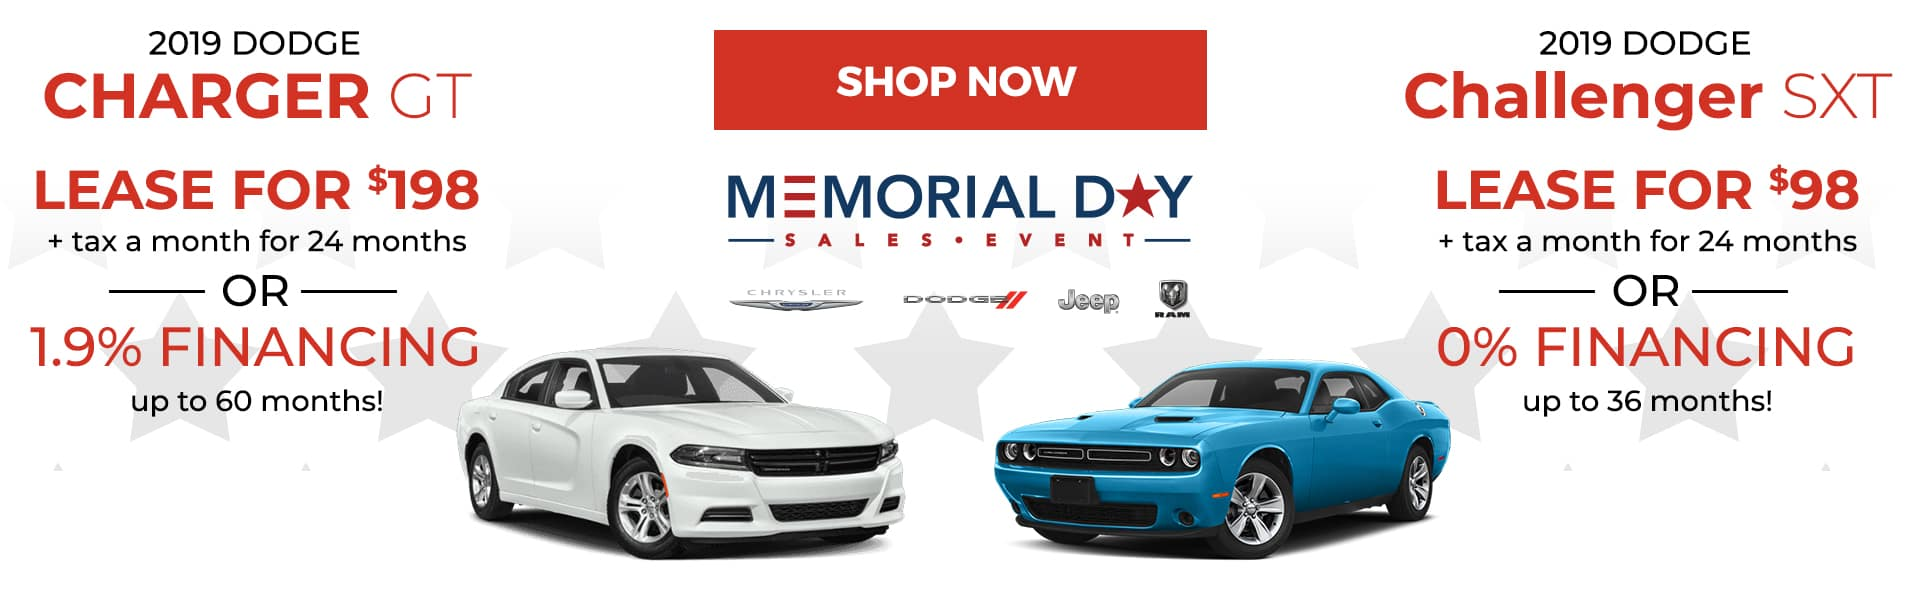 Dodge Memorial Day Offers